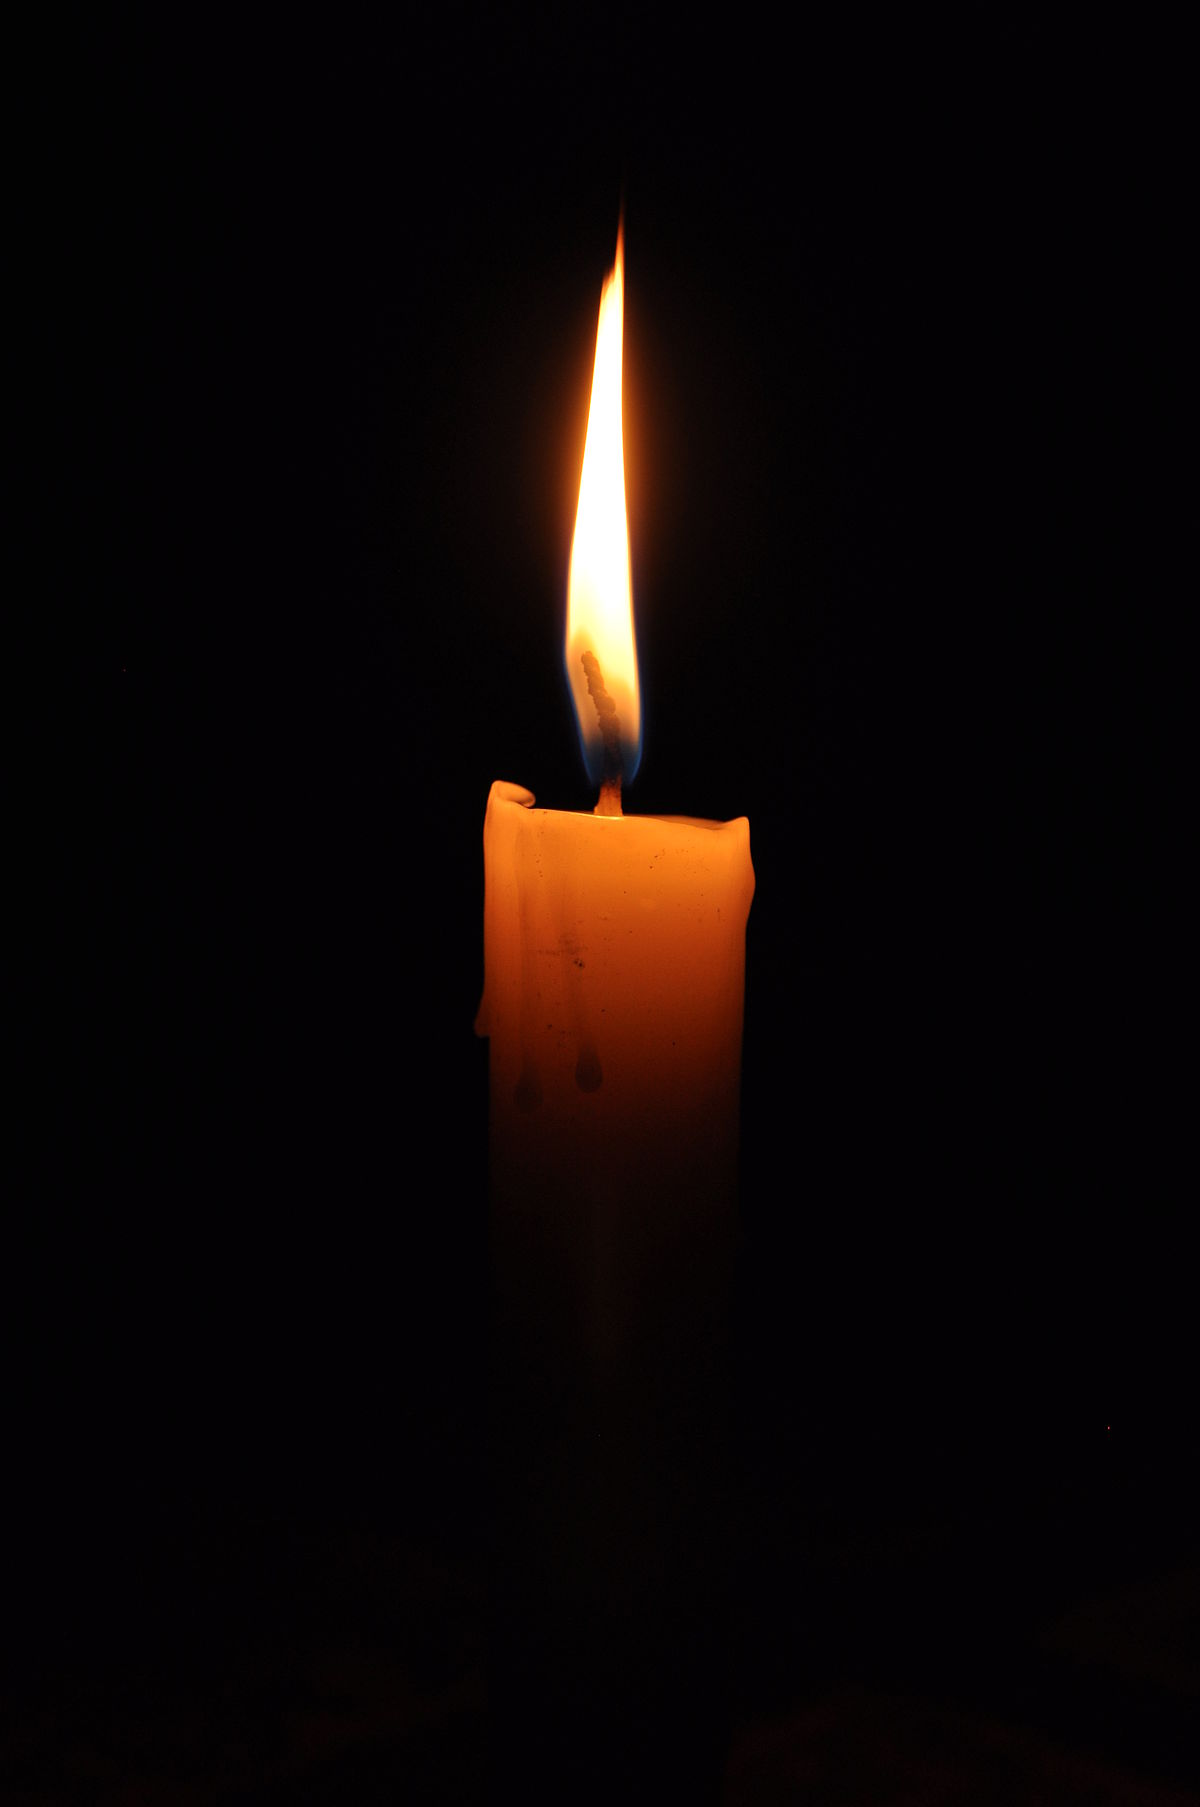 candle - Wiktionary